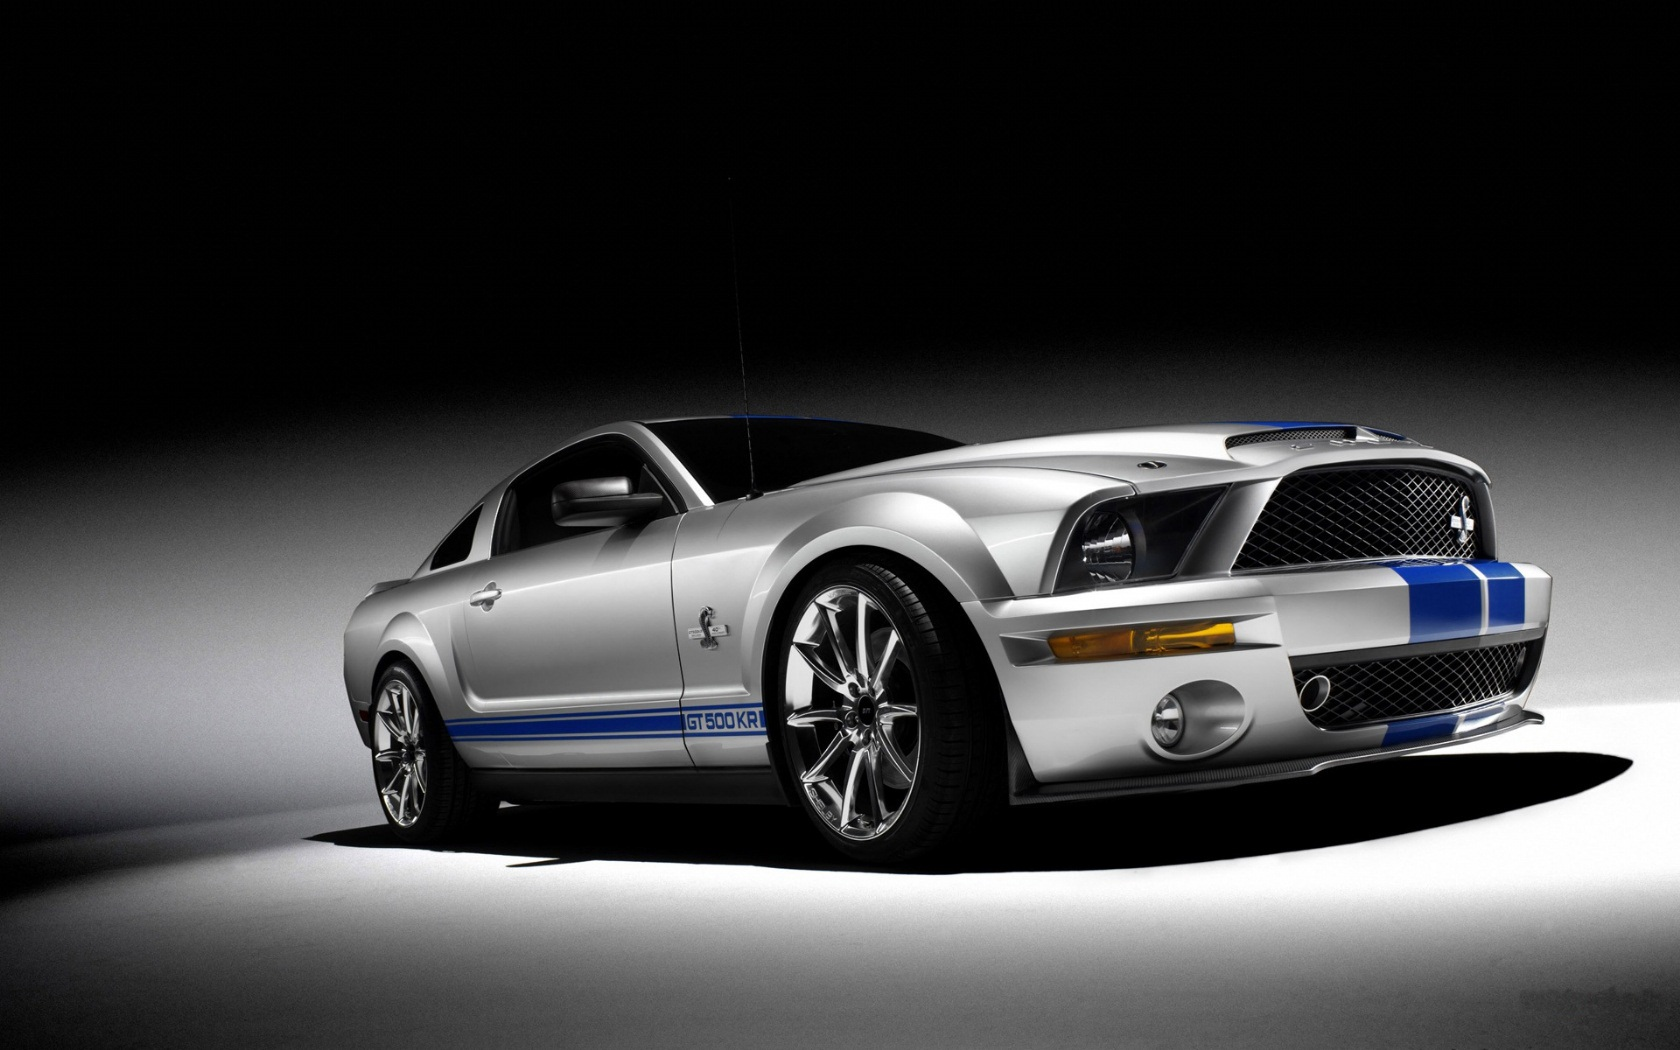 Ford Ford Mustang Desktop Wallpaper Hd Auto Car Wallpapers 1680x1050